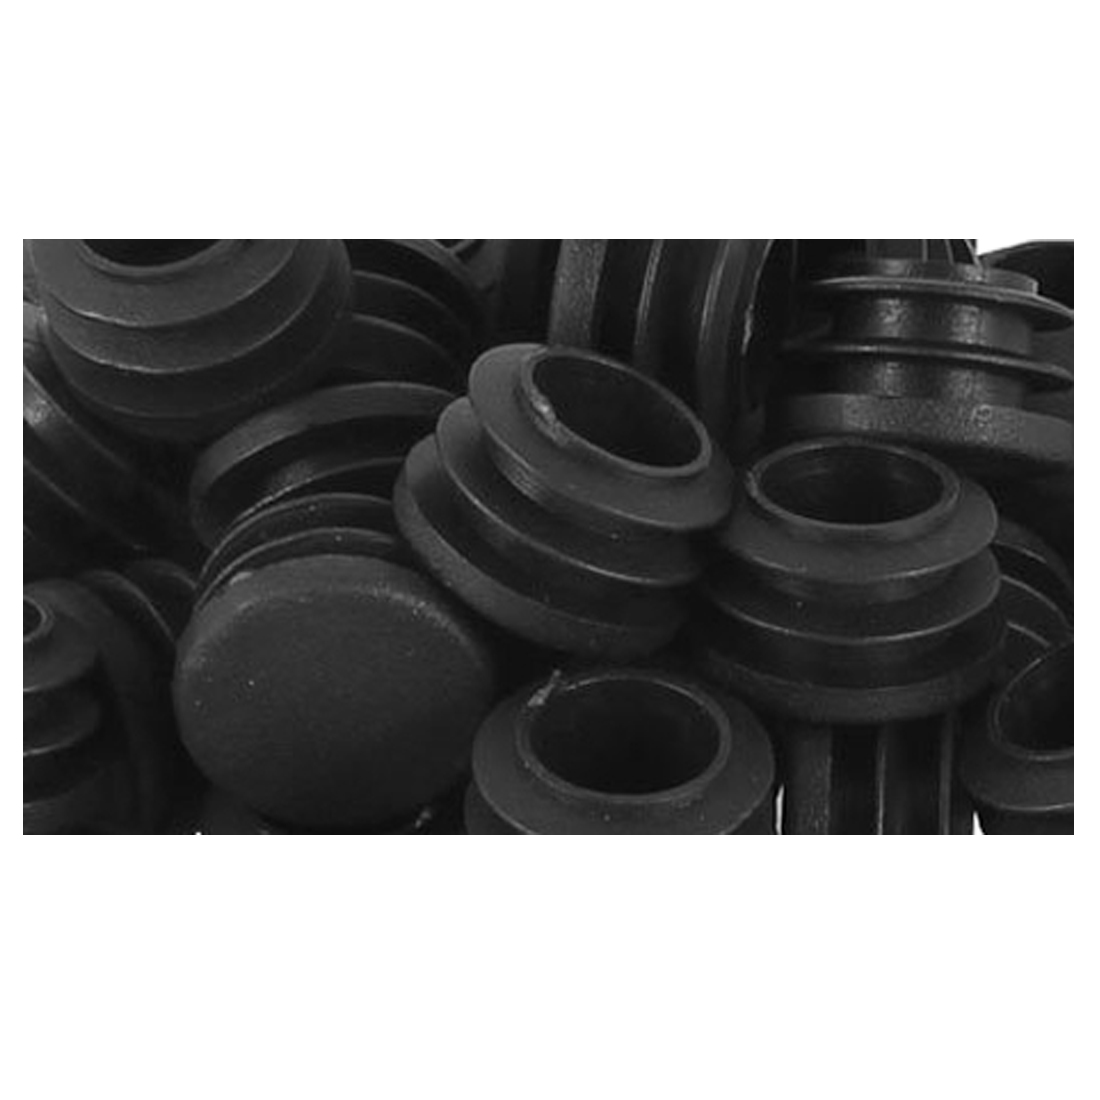 plastic feet for chair legs how to make a kitchen round cap table ribbed tube insert 22mm